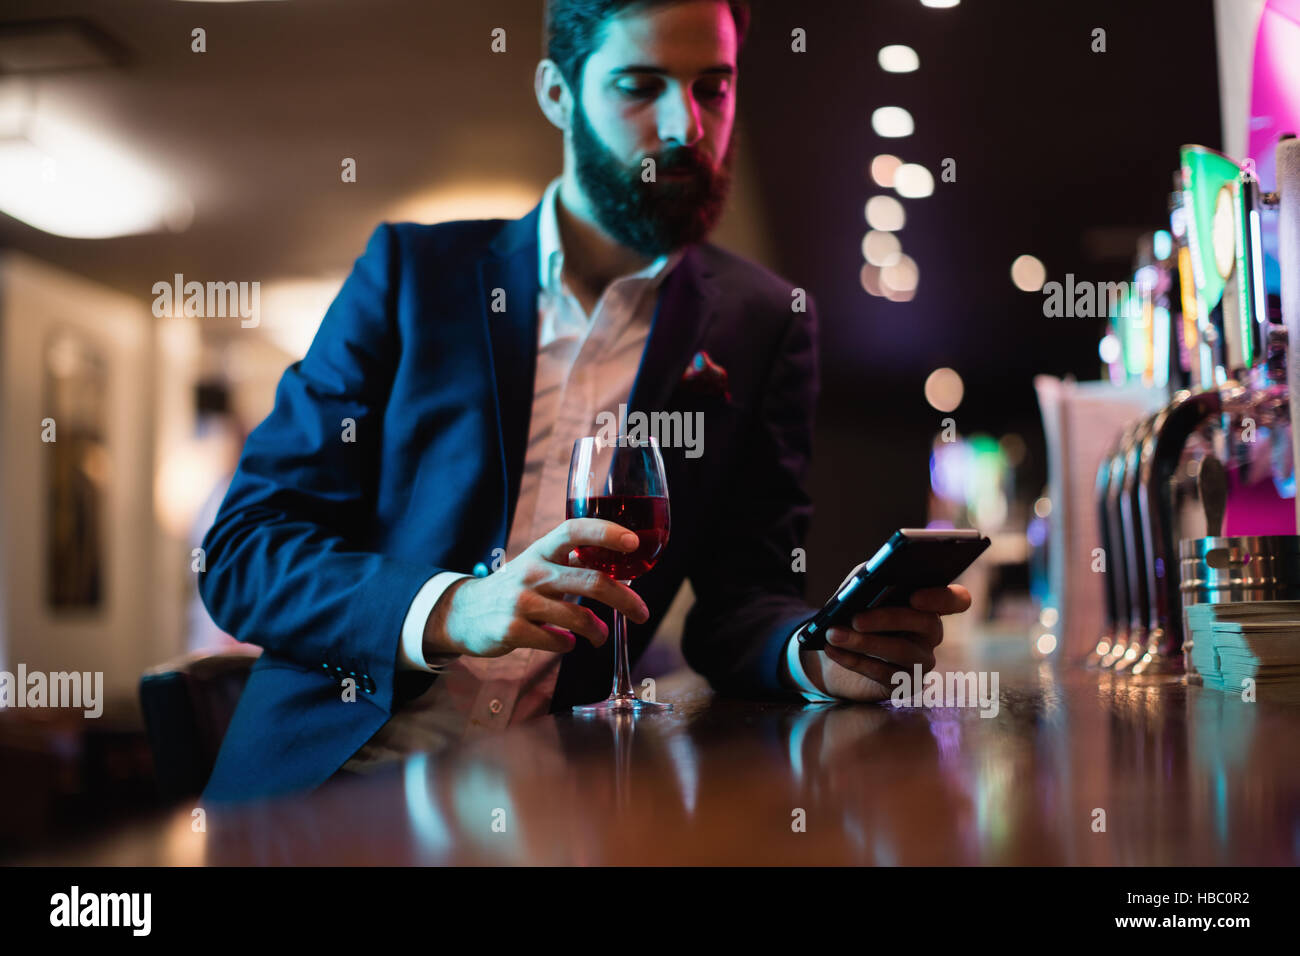 Businessman using mobile phone with glass of red wine in hand Stock Photo